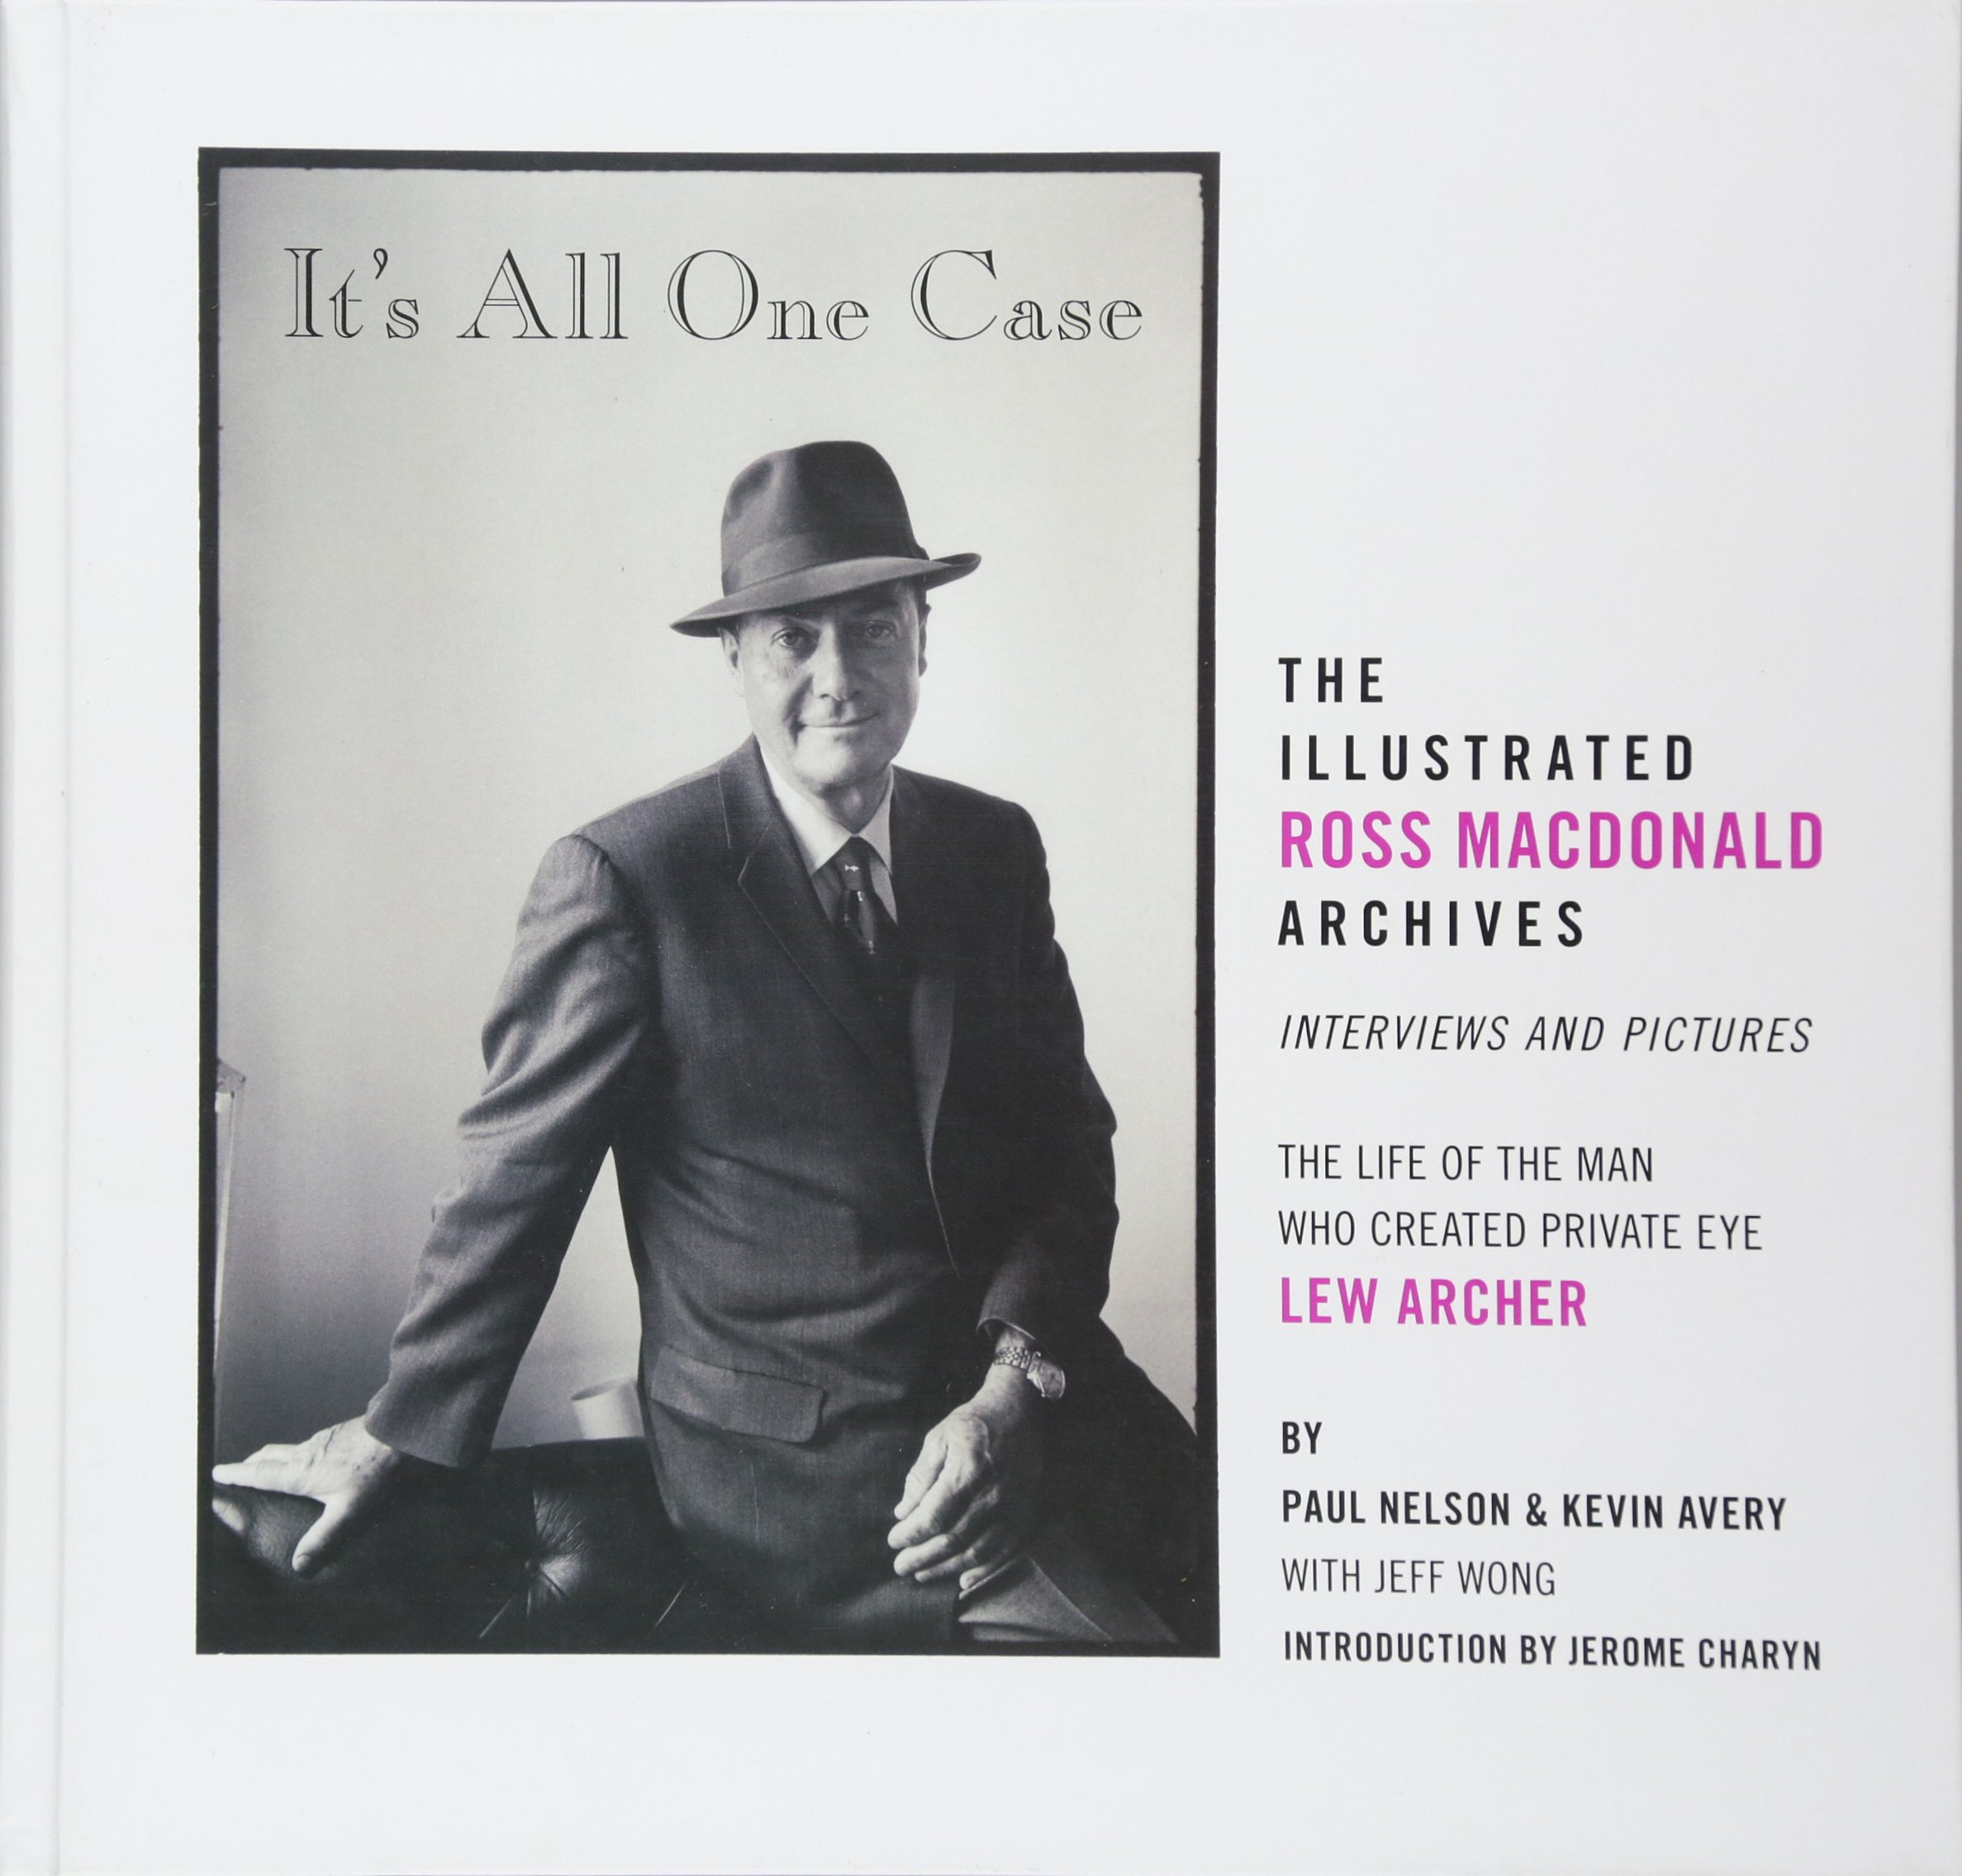 Image result for it's all one case ross macdonald